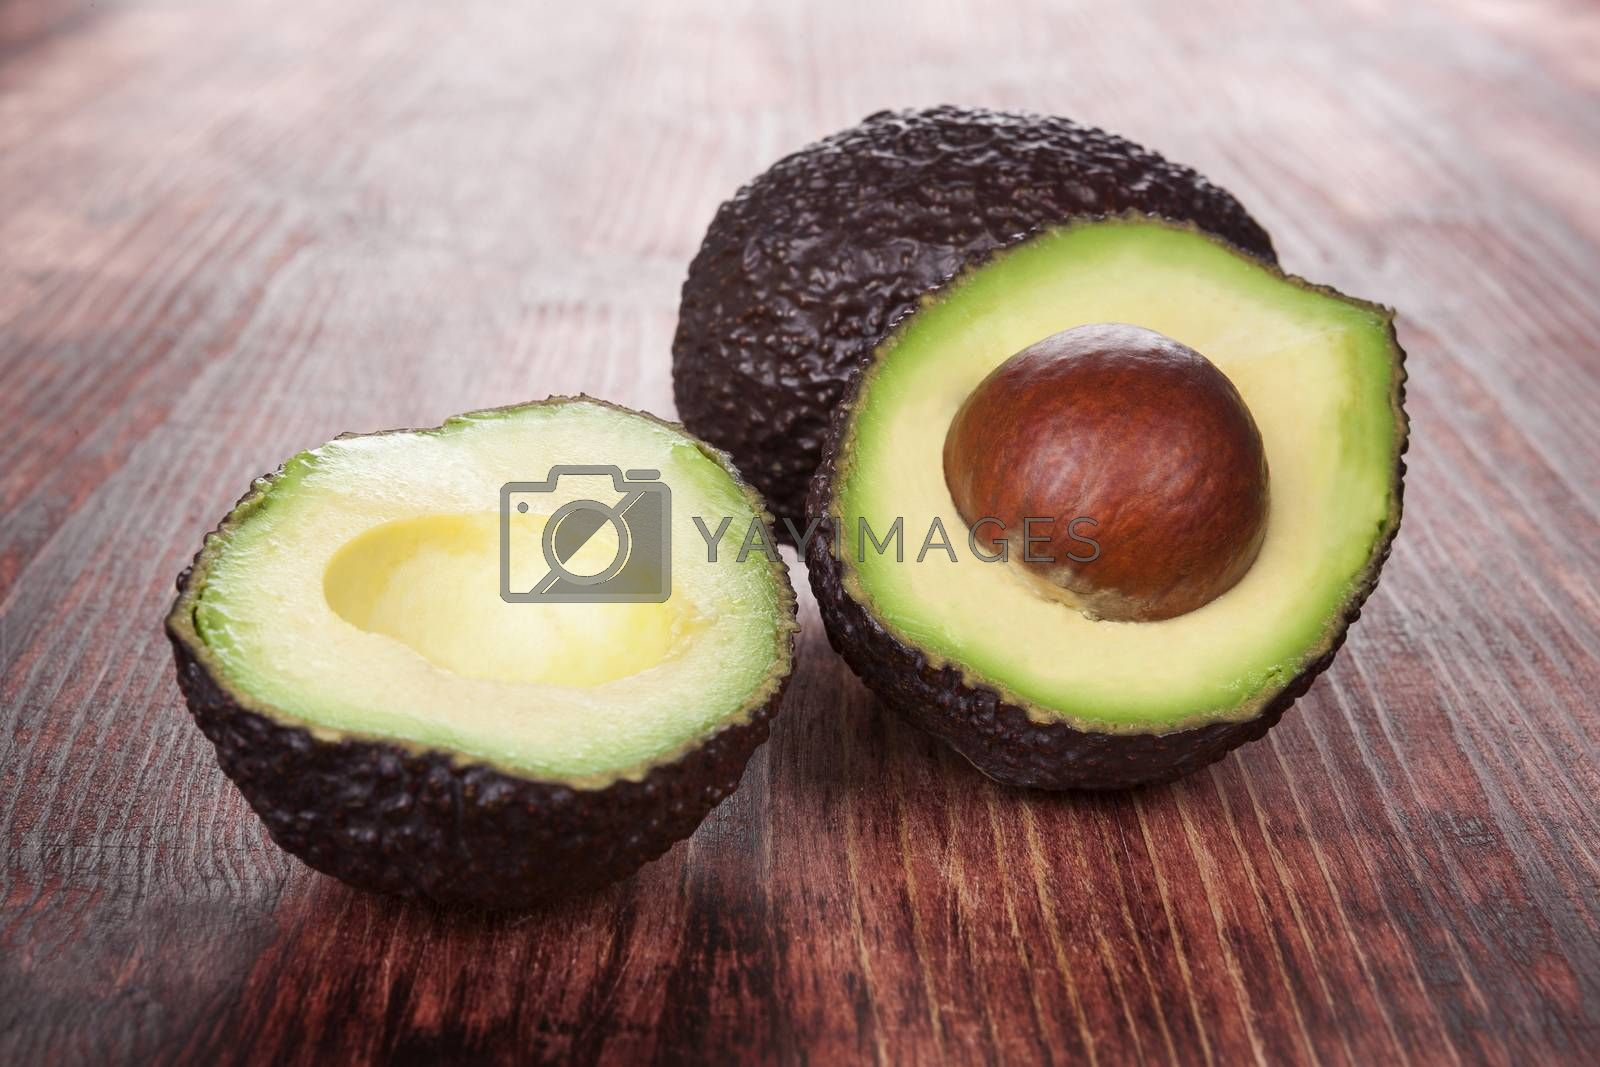 Ripe avocado on wooden background. Culinary healthy fruit eating.